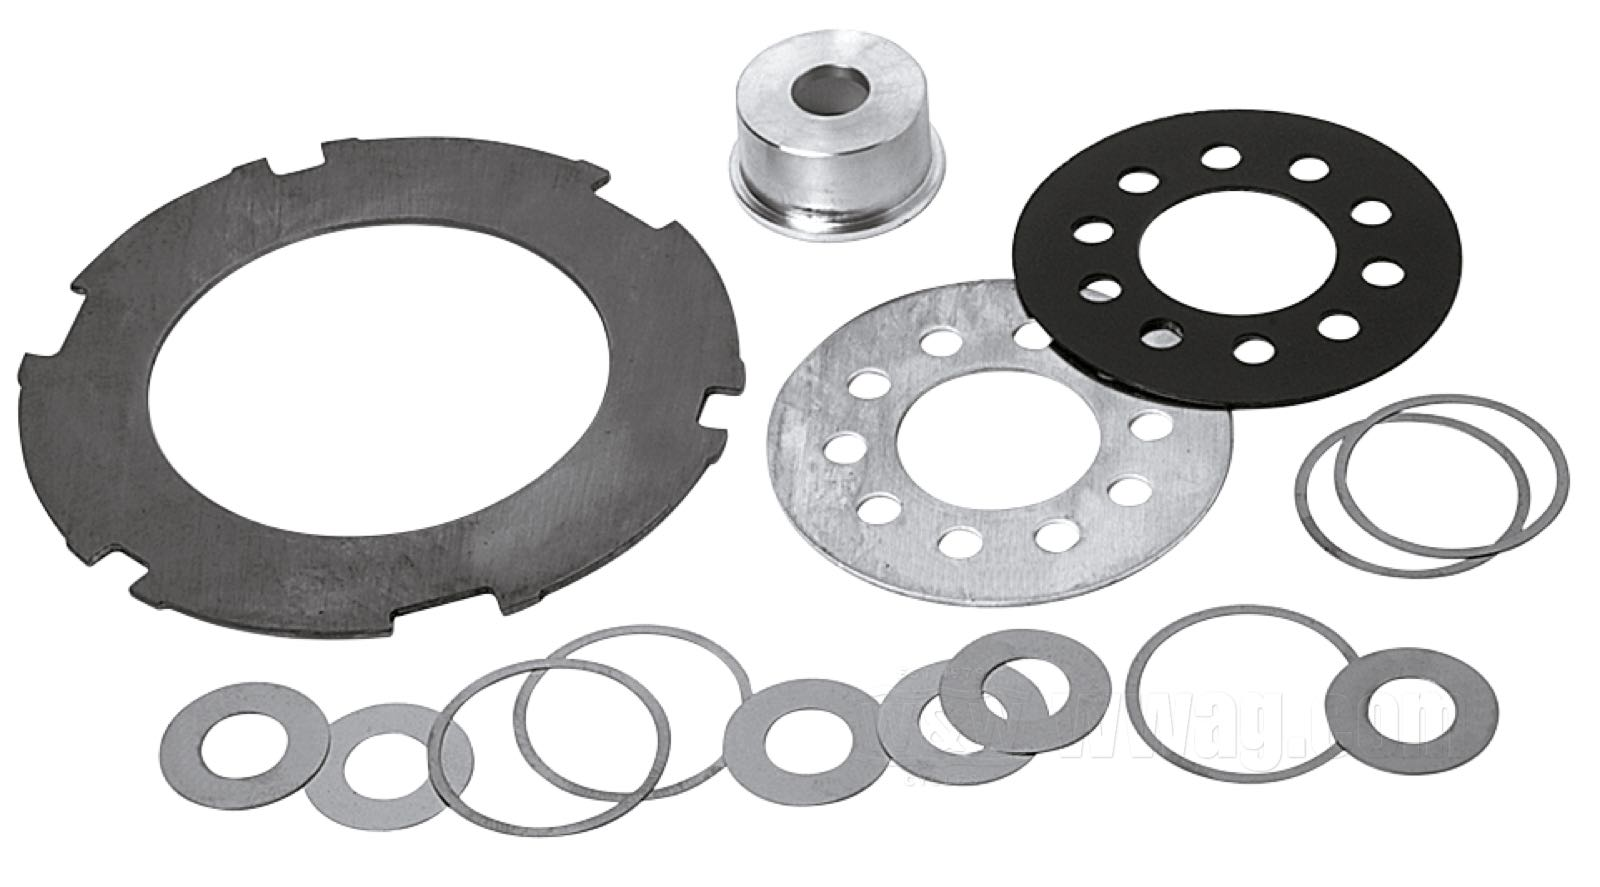 Tamer Style Clutch Hub Retainer Kit for Harley Davidson by V-Twin